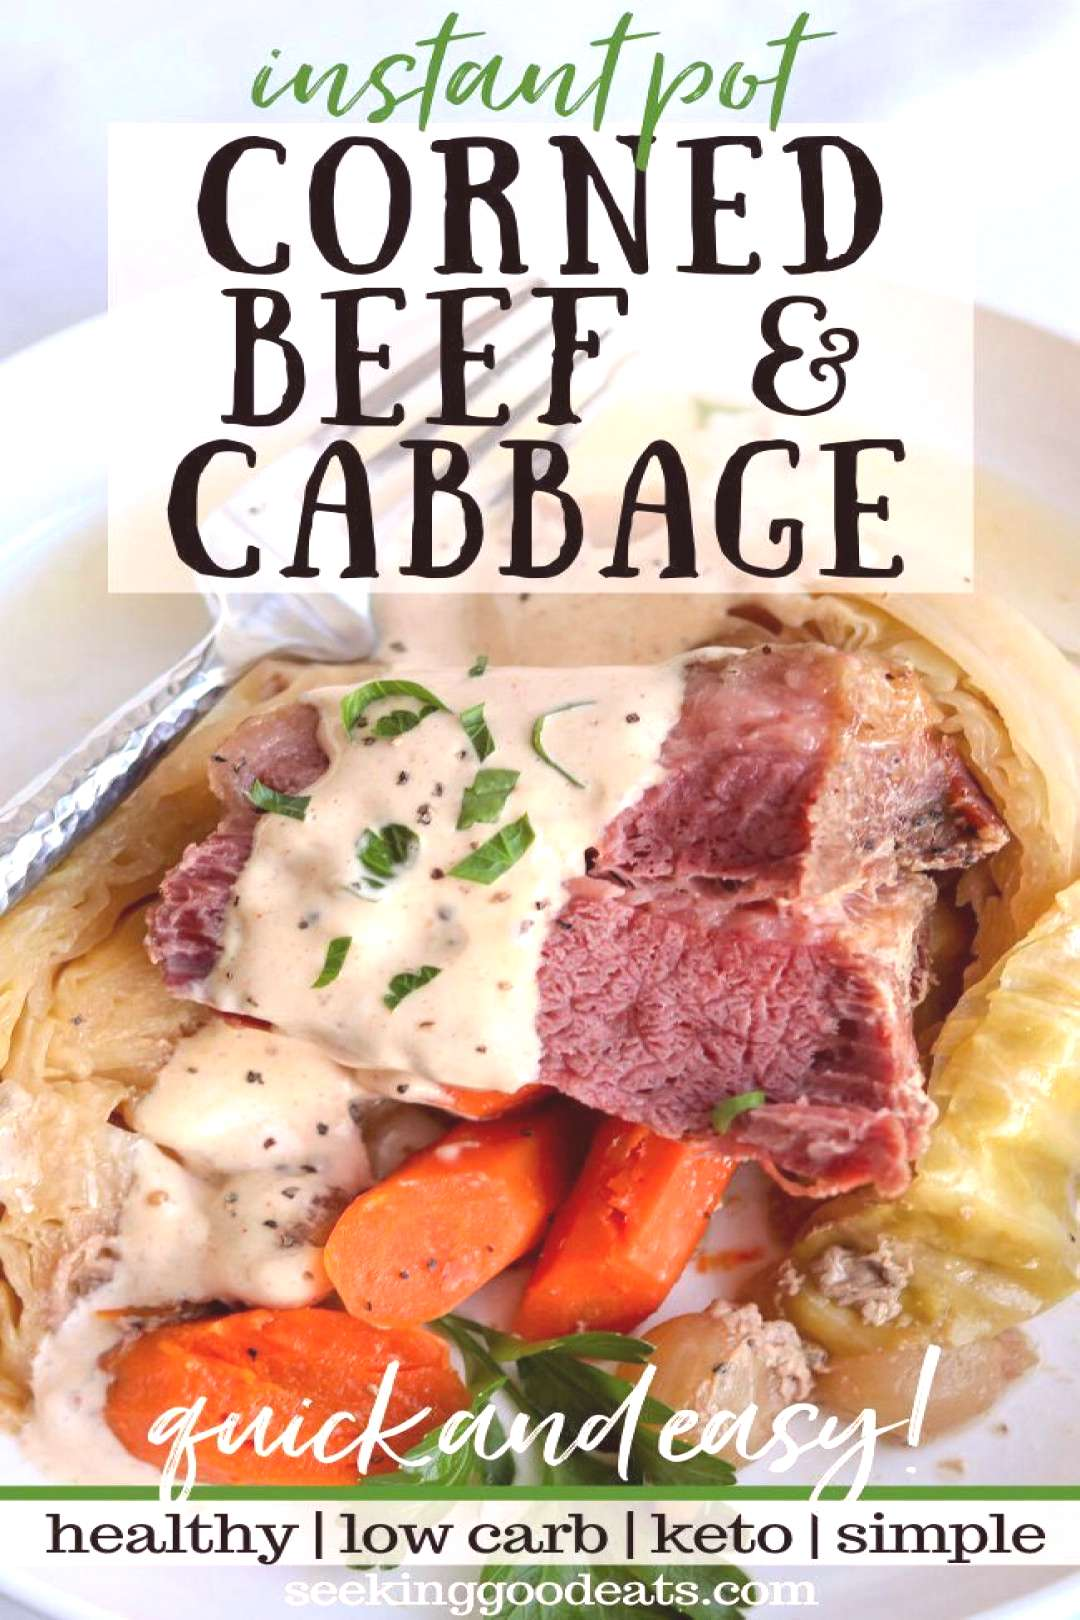 Slow Cooker Corned Beef and Cabbage The best corned beef recipe made in your instant pot! Corned be